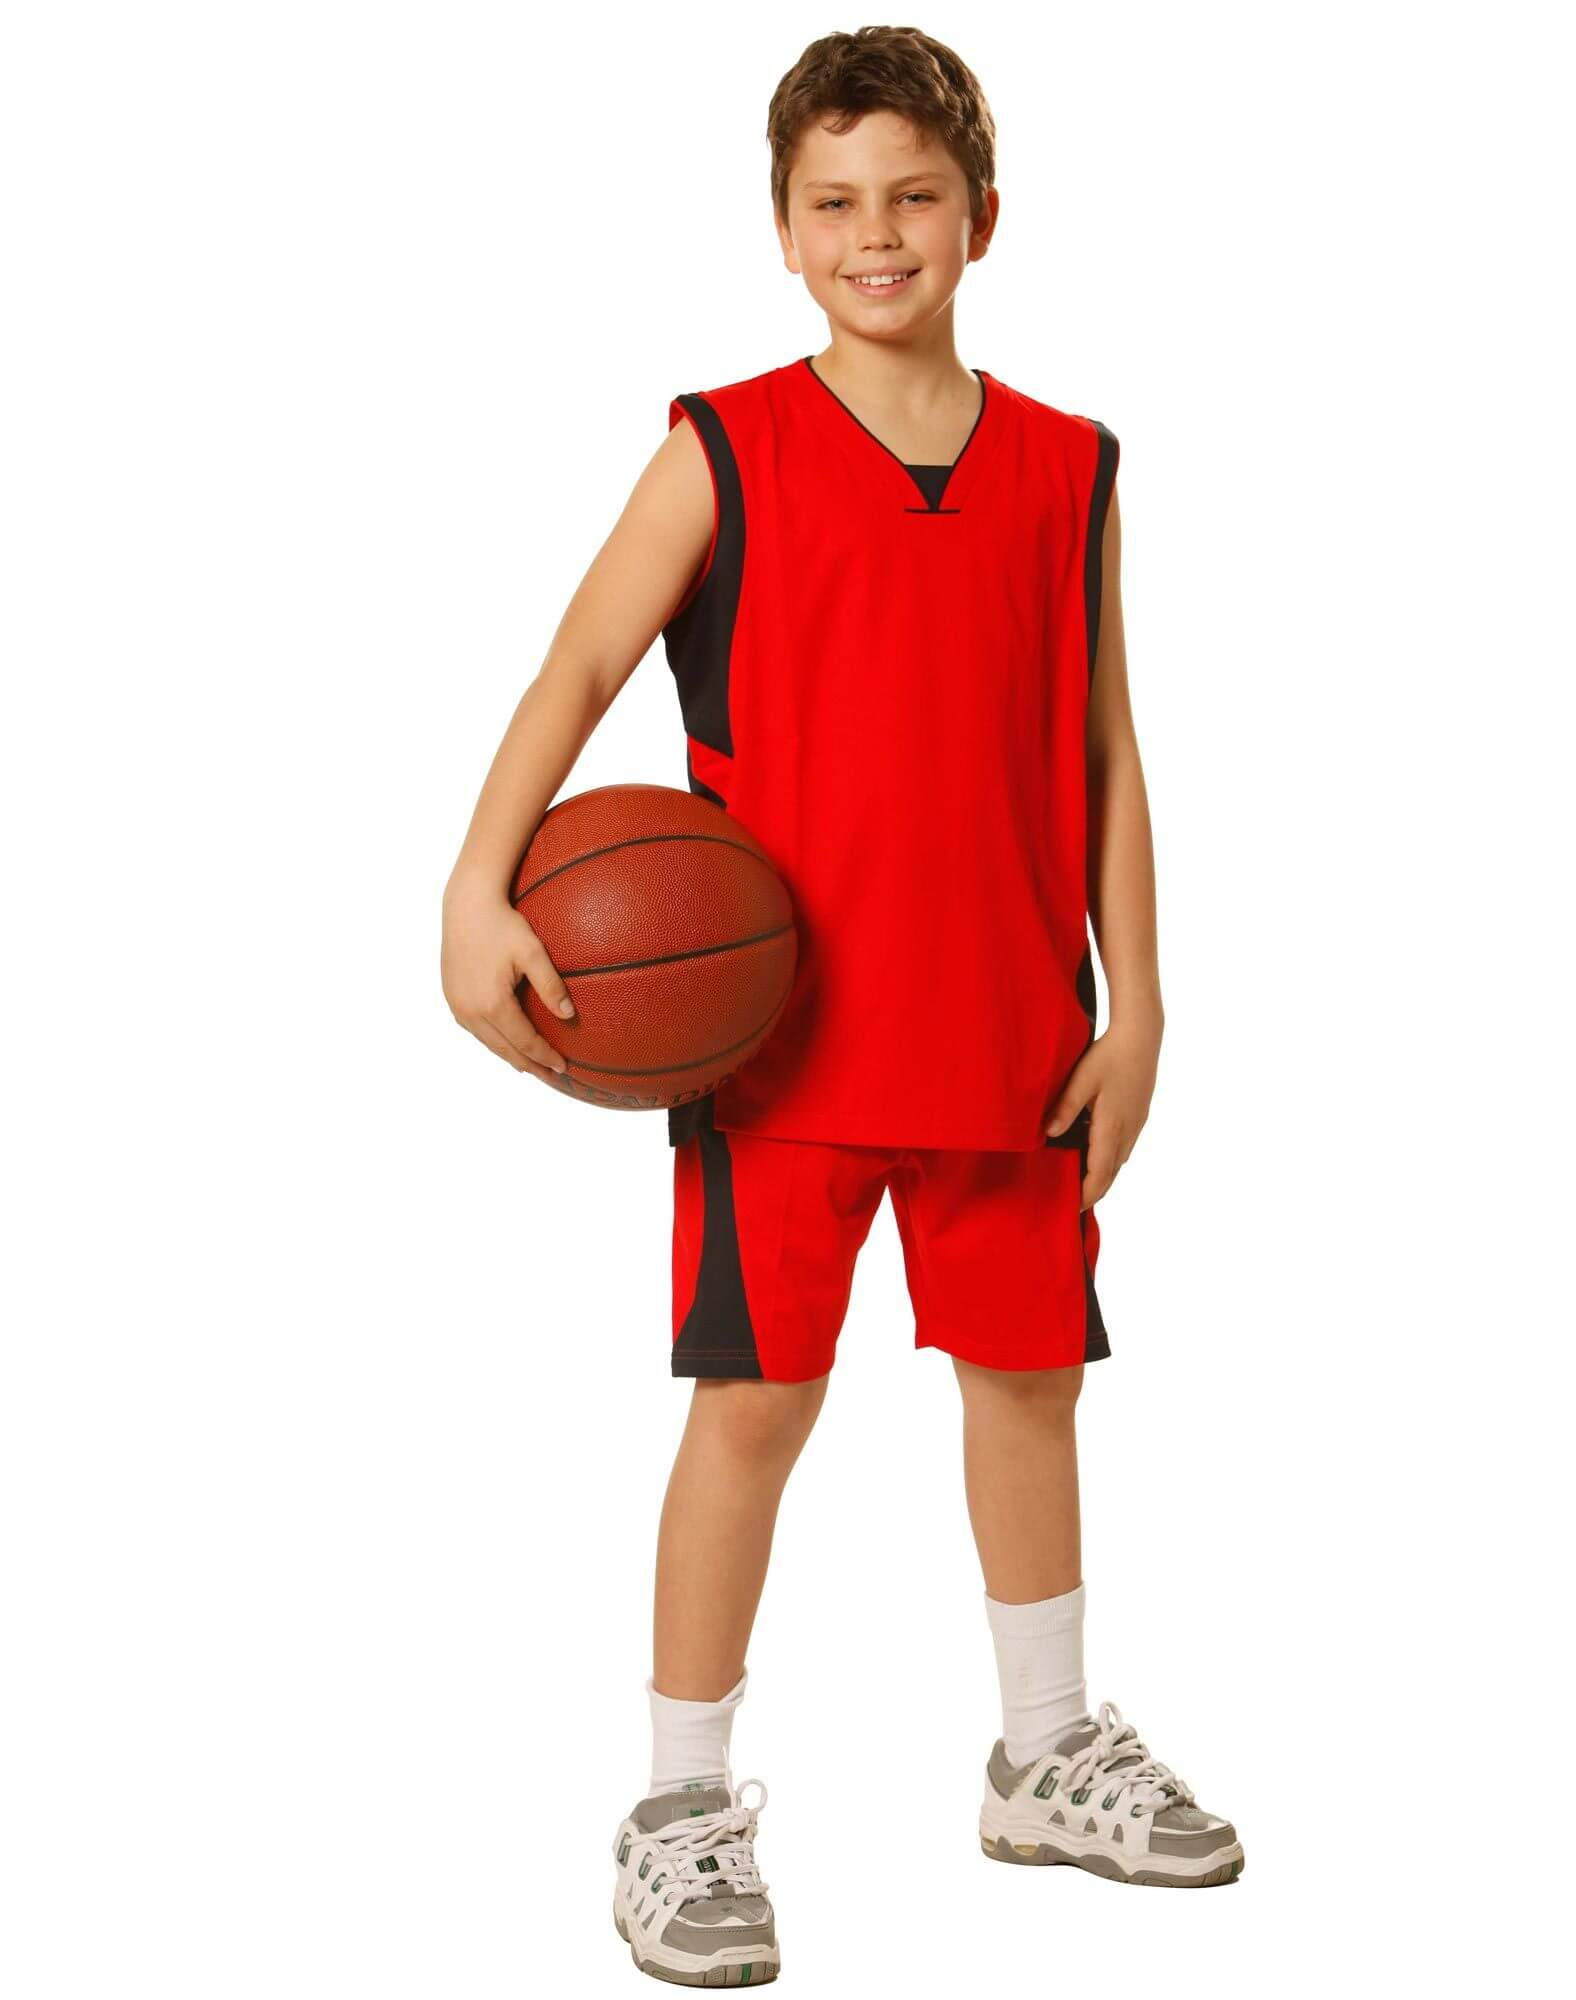 Kids Basketball Jerseys Manufacturers in Sri-lanka